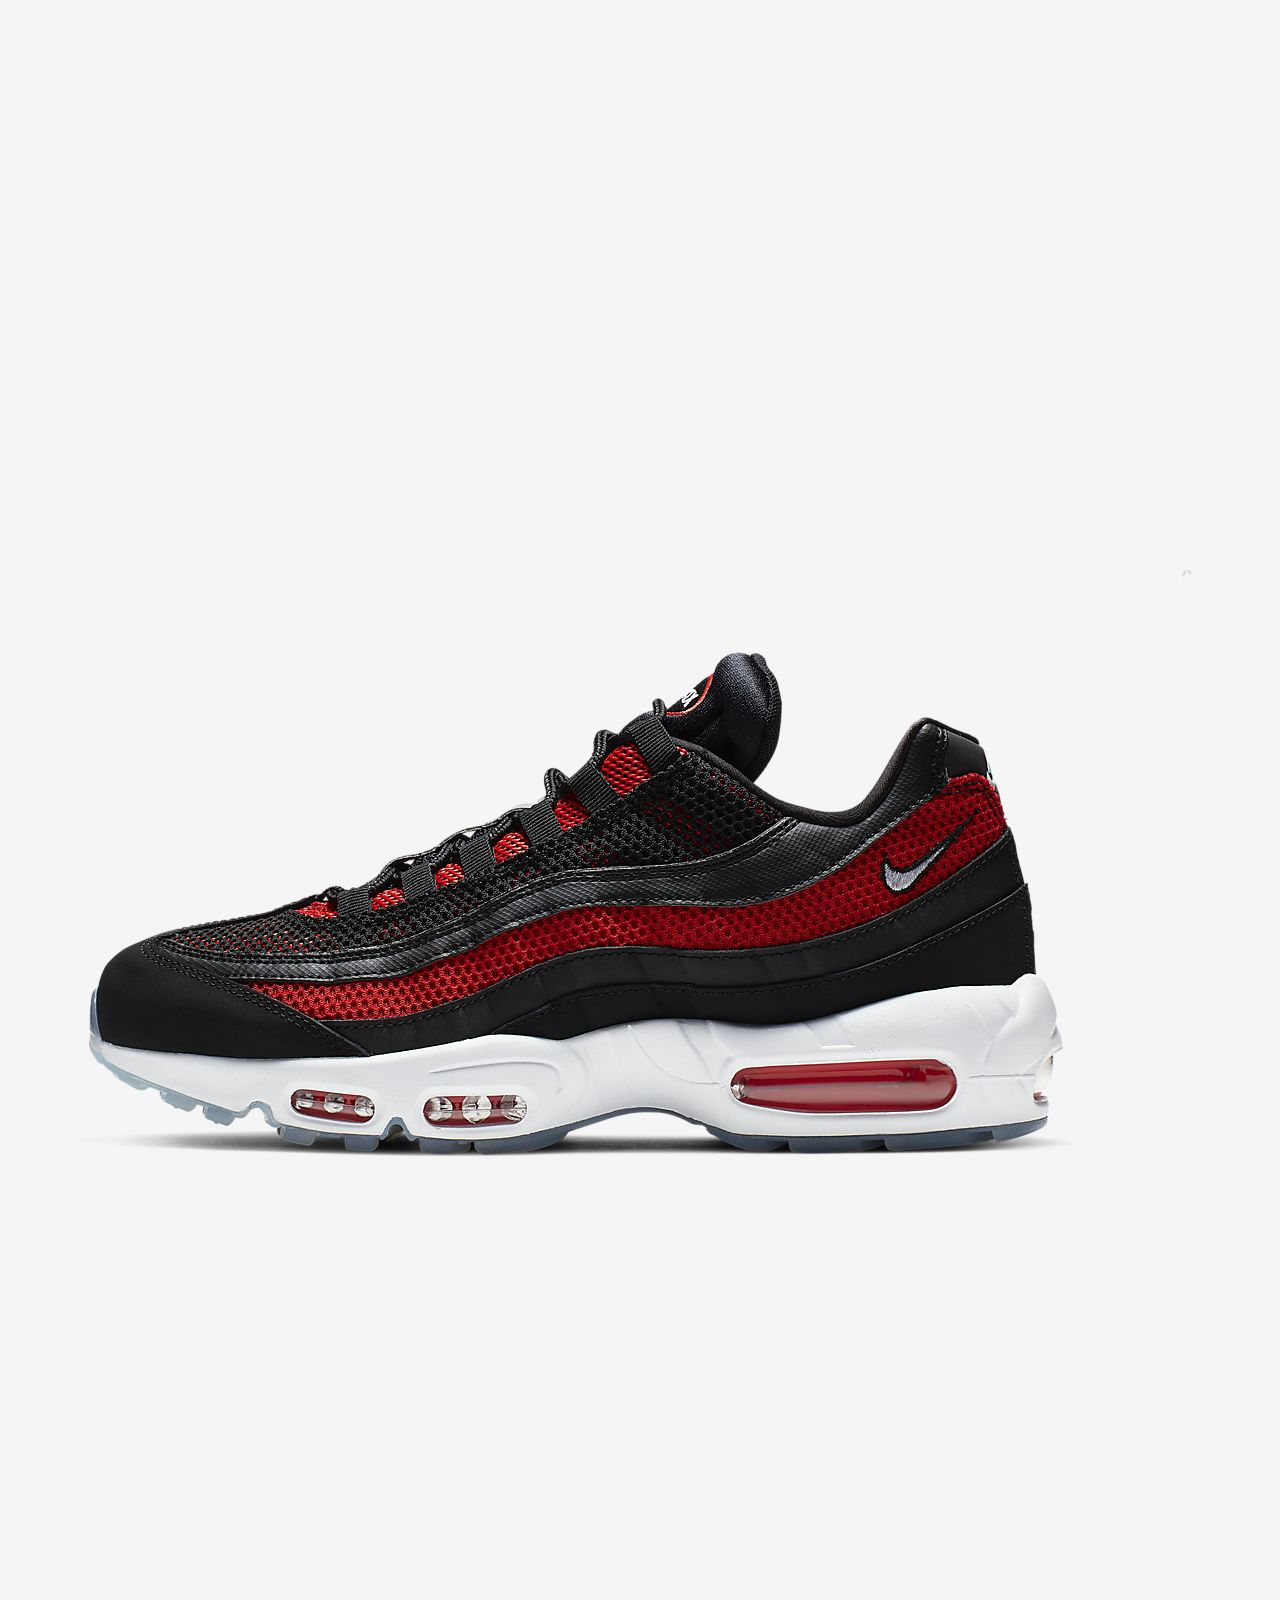 c54139046a9f6 Nike Air Max 95 Essential Men's Shoe. Nike.com AU